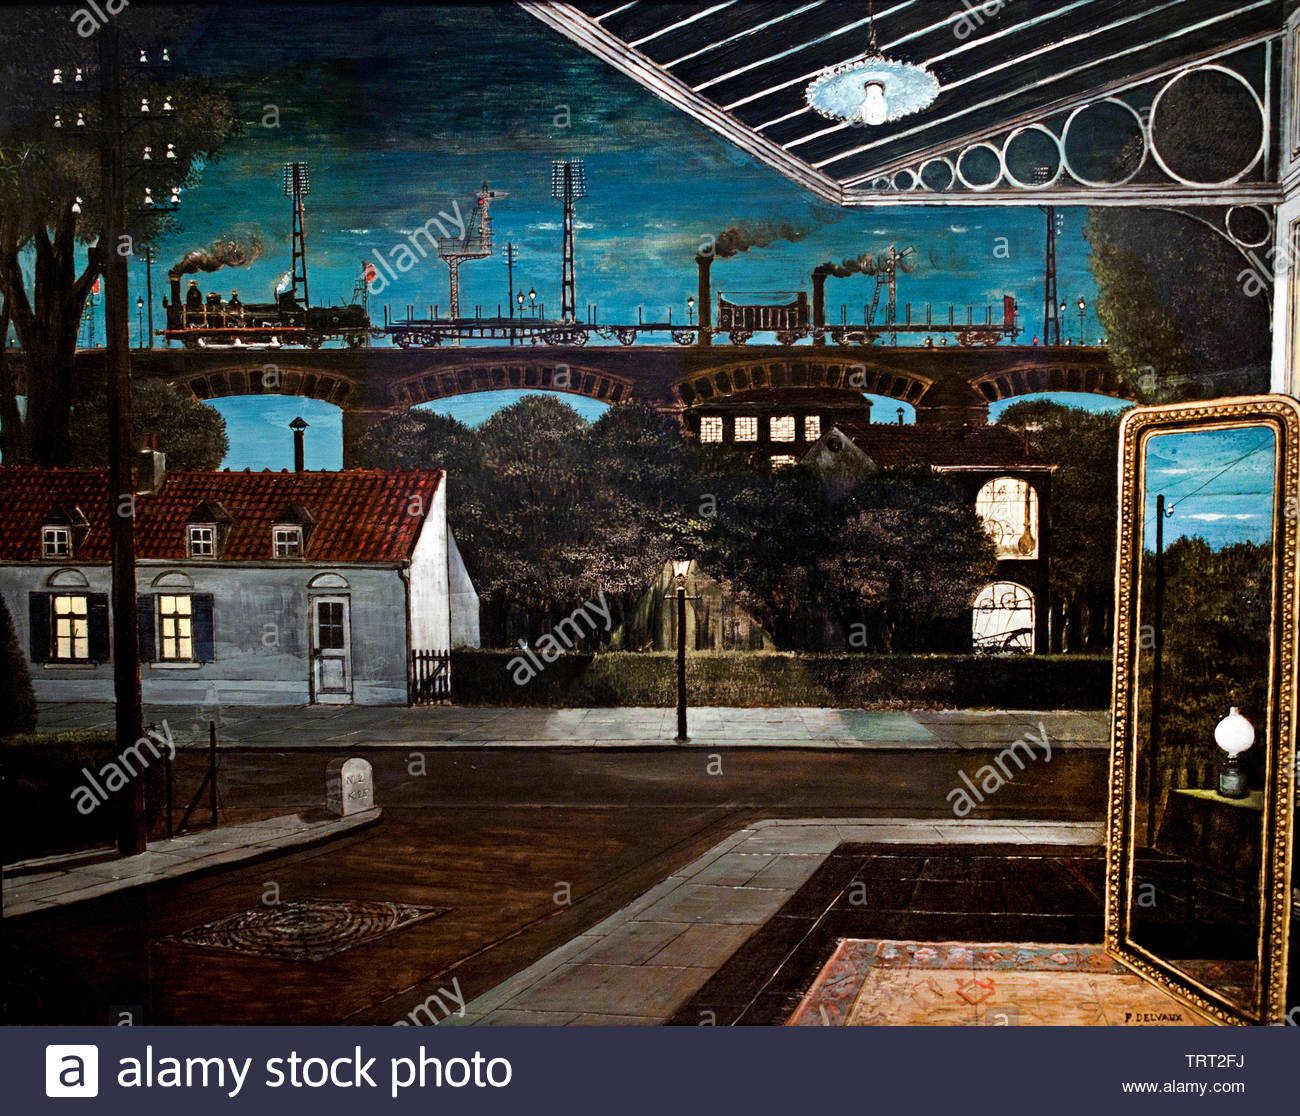 The Viaduct by Paul Delvaux born in 1897 Belgian Belgium, ( dream-like scenes of women, classical architecture, trains, skeletons, in combination, Surrealist movement.) - Stock Image